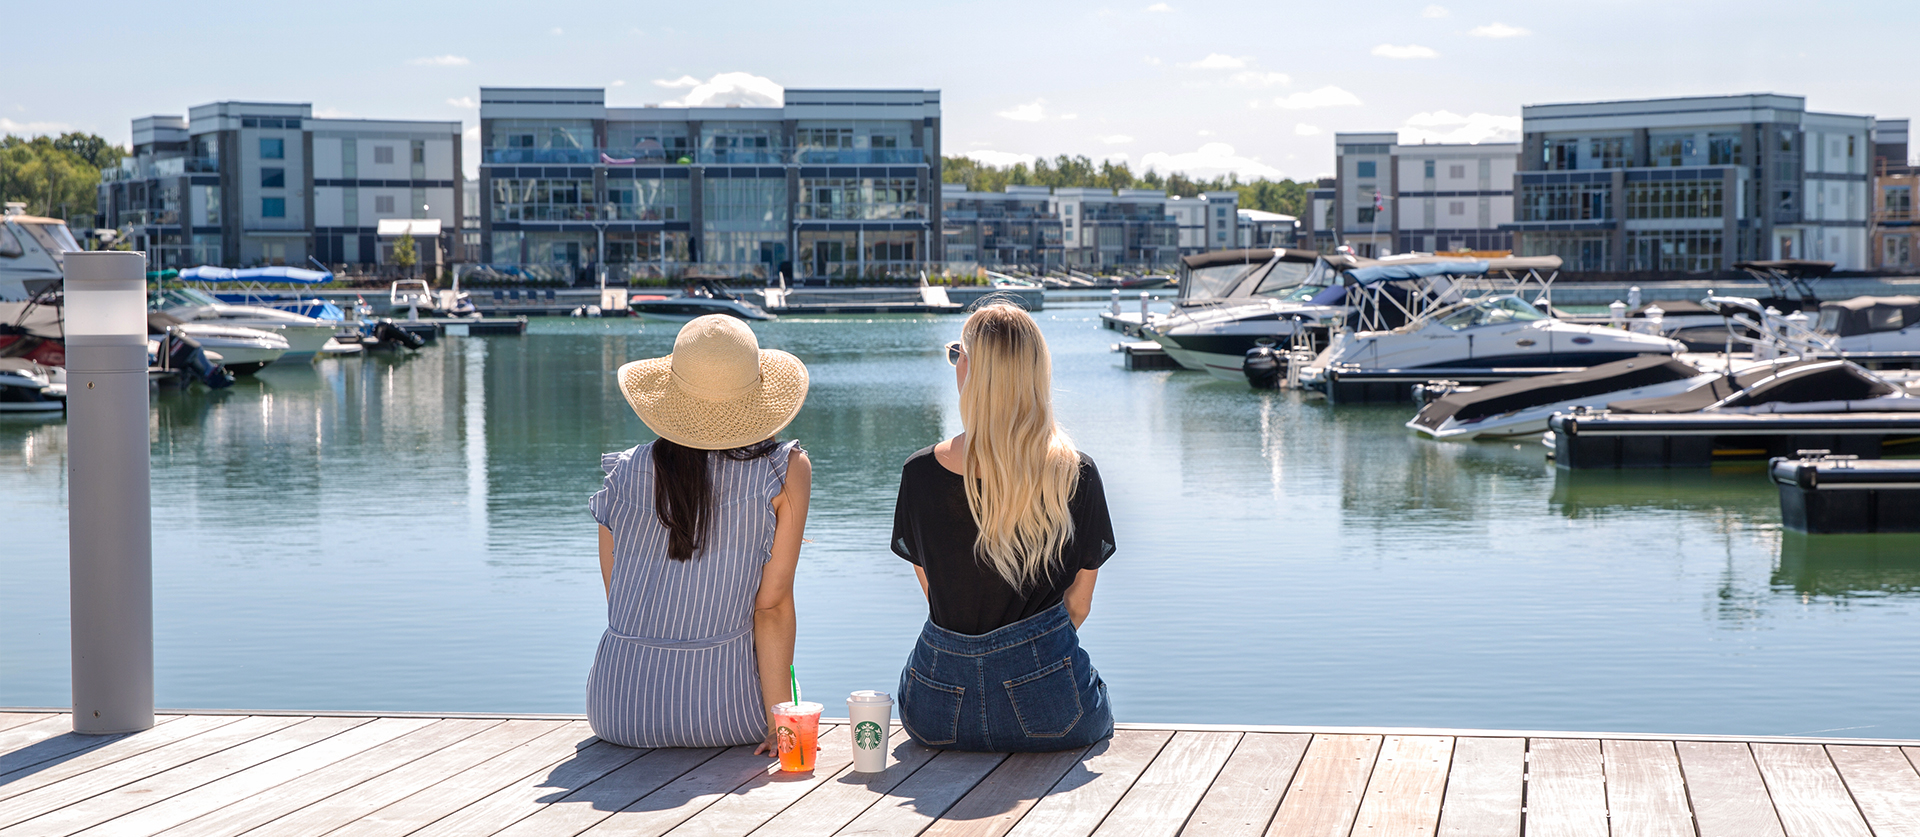 Image result for friday harbour pier innisfil